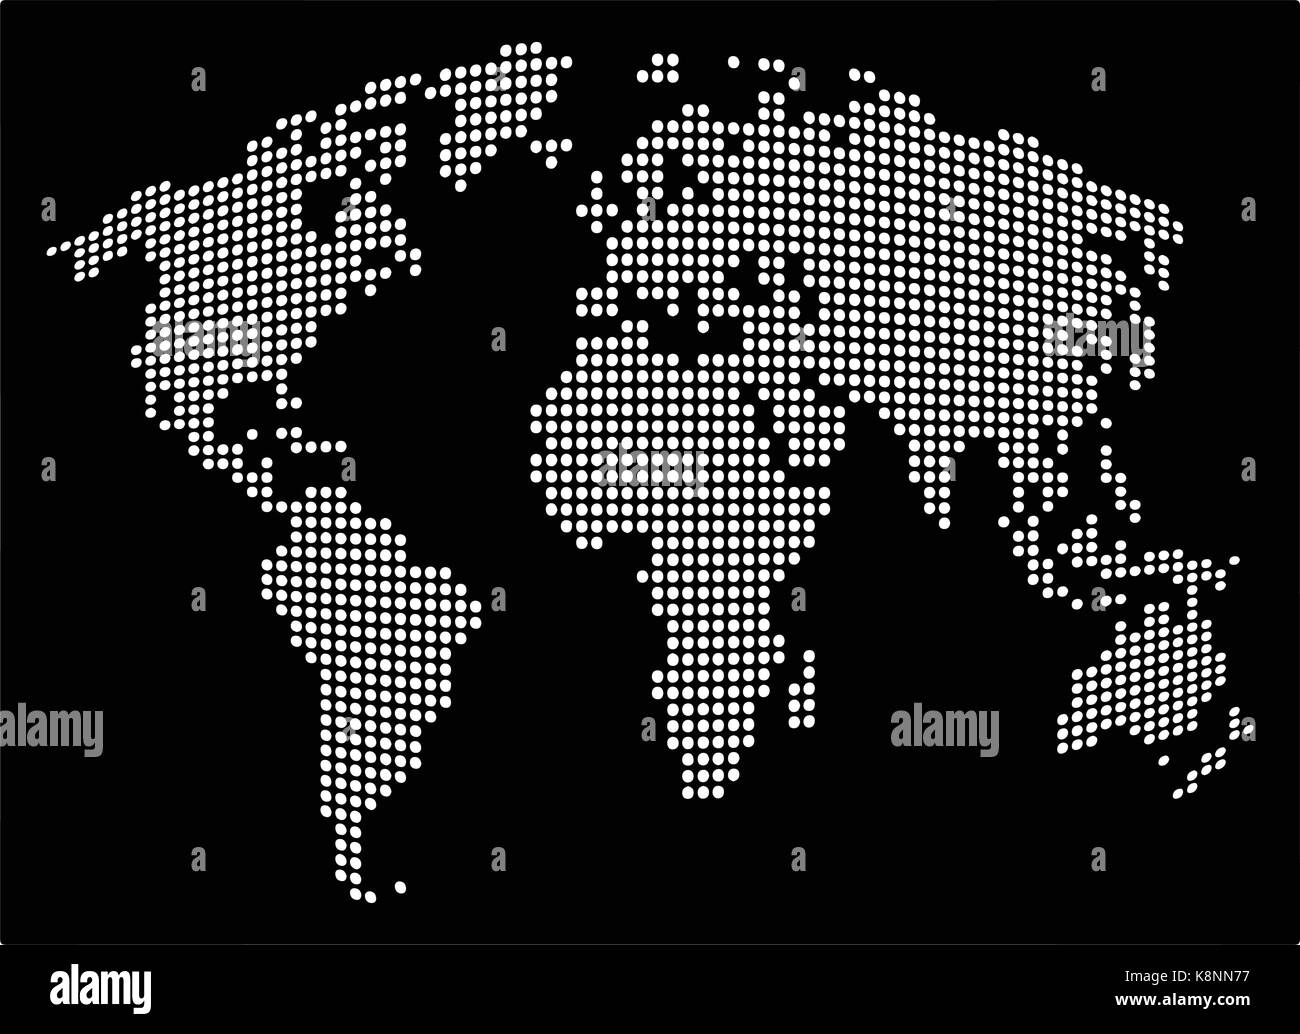 World map abstract dotted vector background black and white stock world map abstract dotted vector background black and white silhouette illustration gumiabroncs Gallery